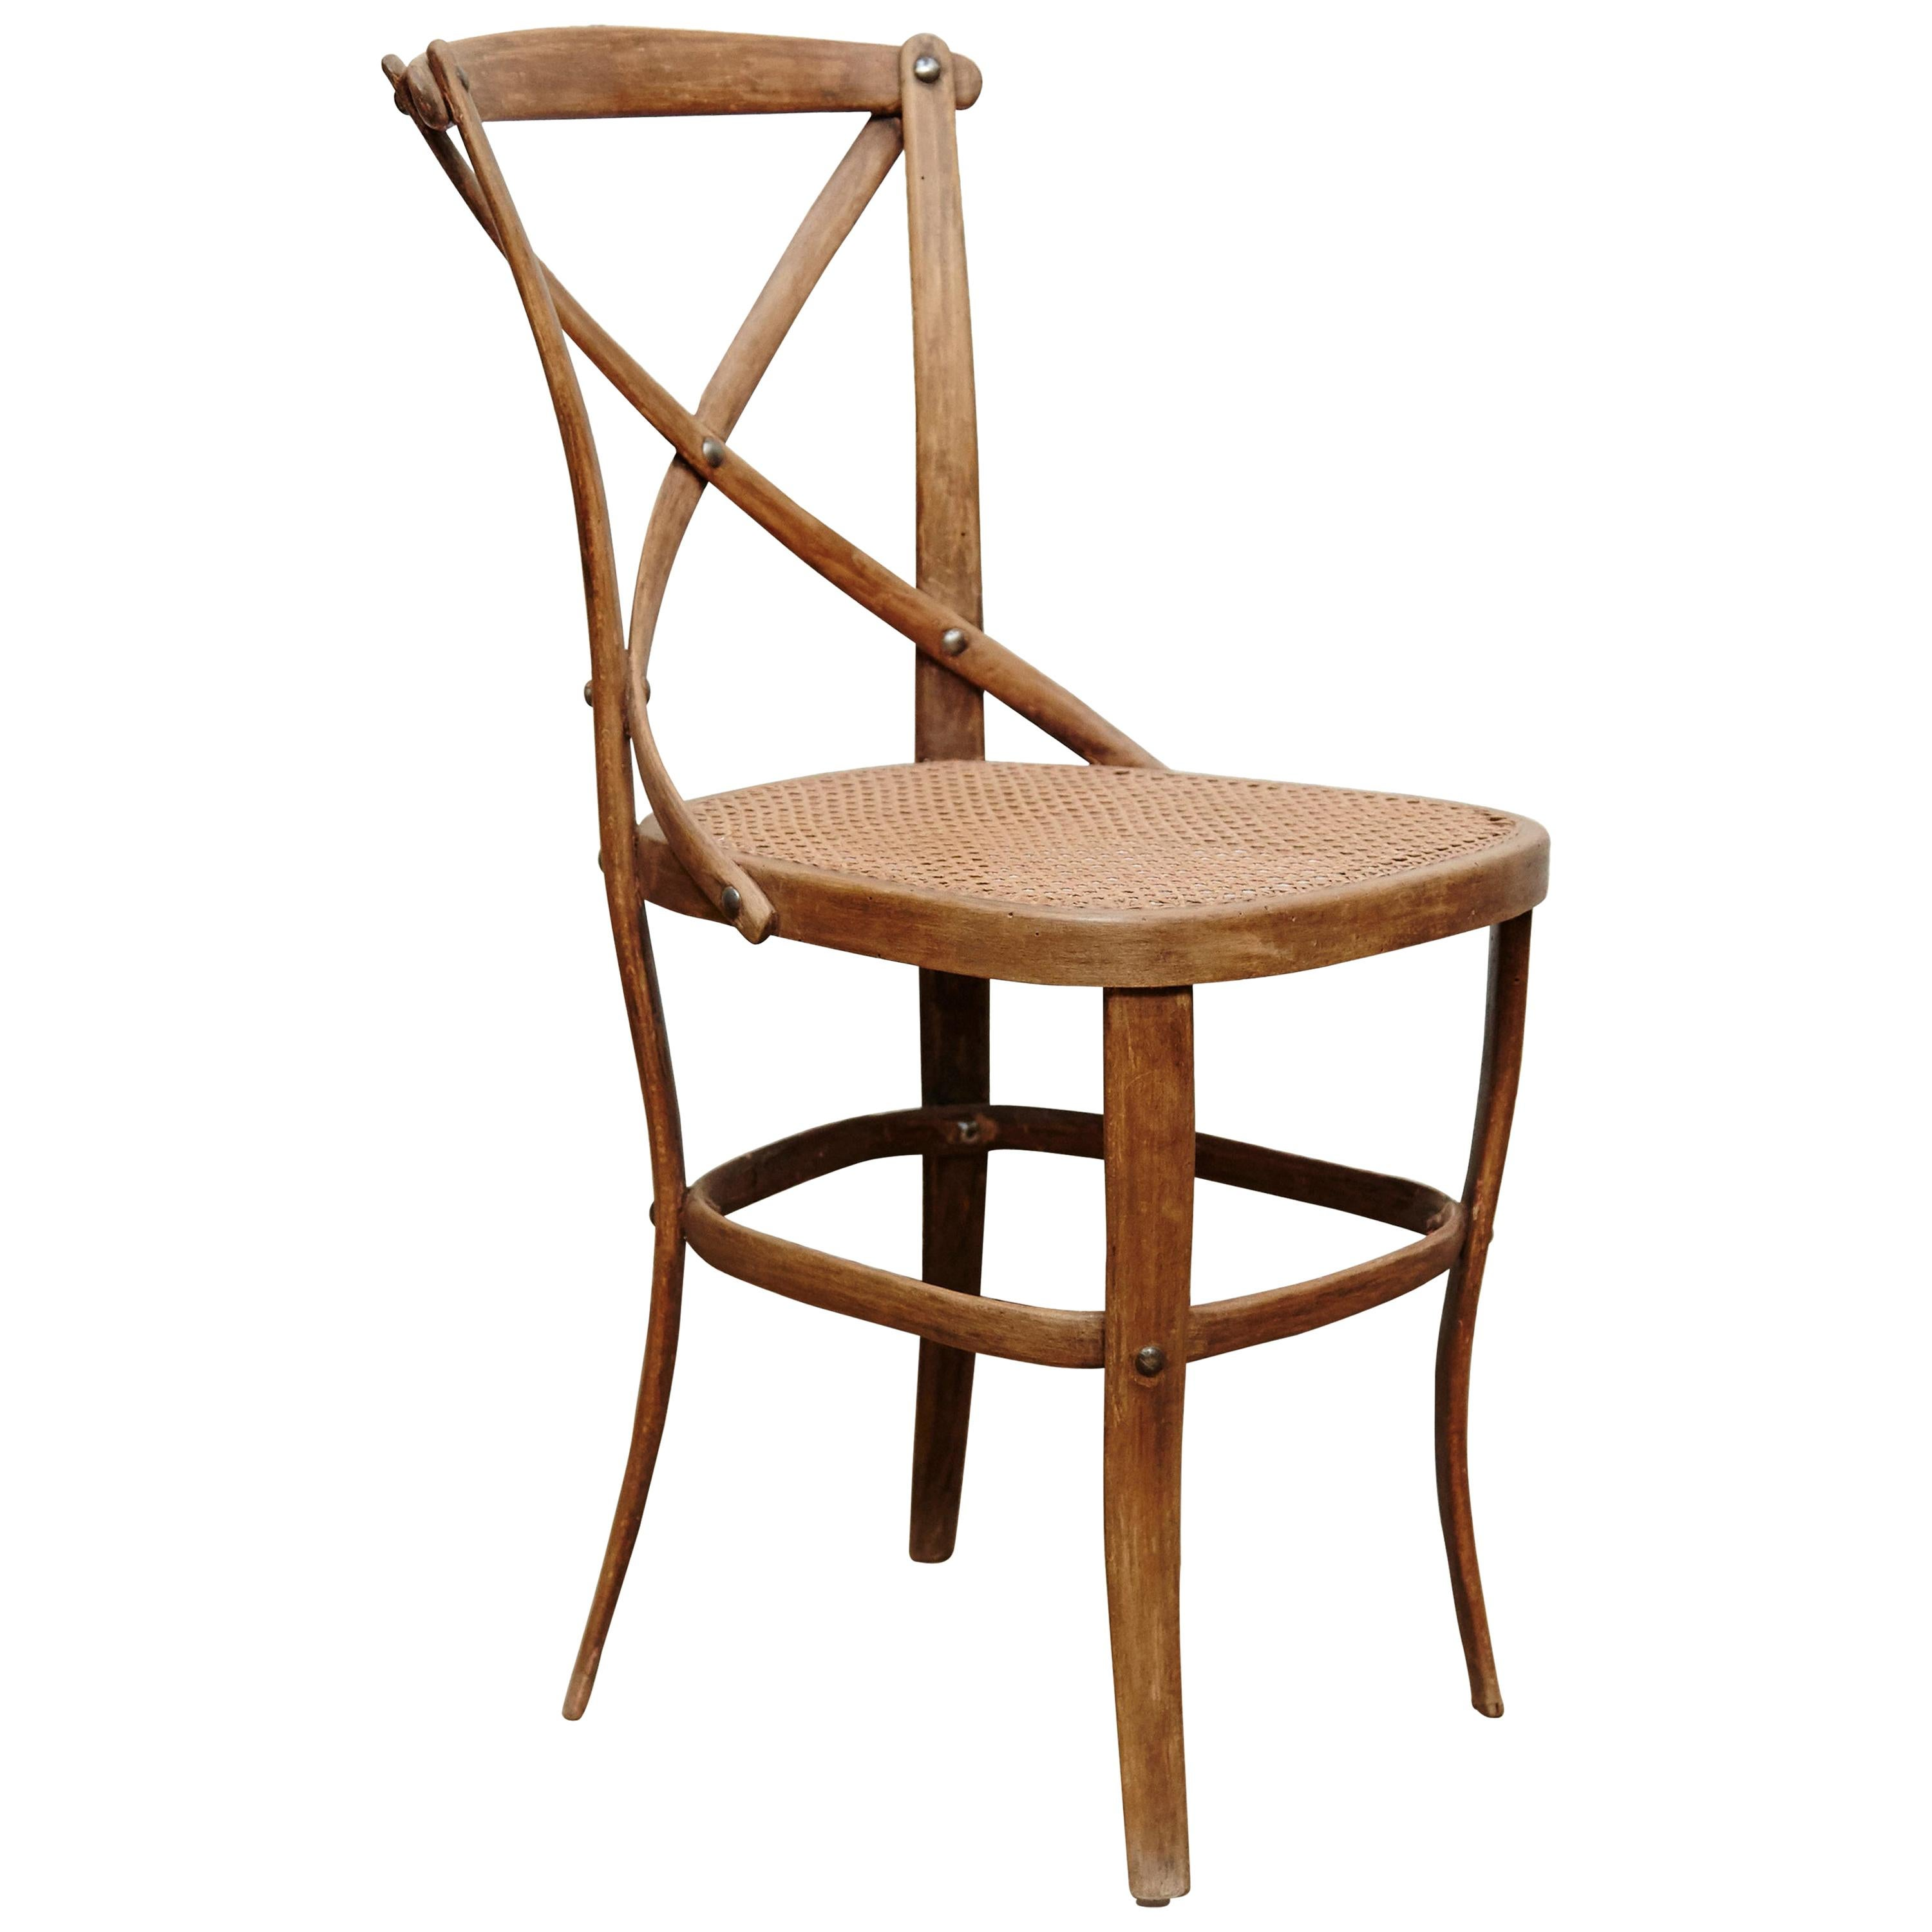 Thonet Wood and Rattan Chair Number 91 by August Thonet, circa 1920